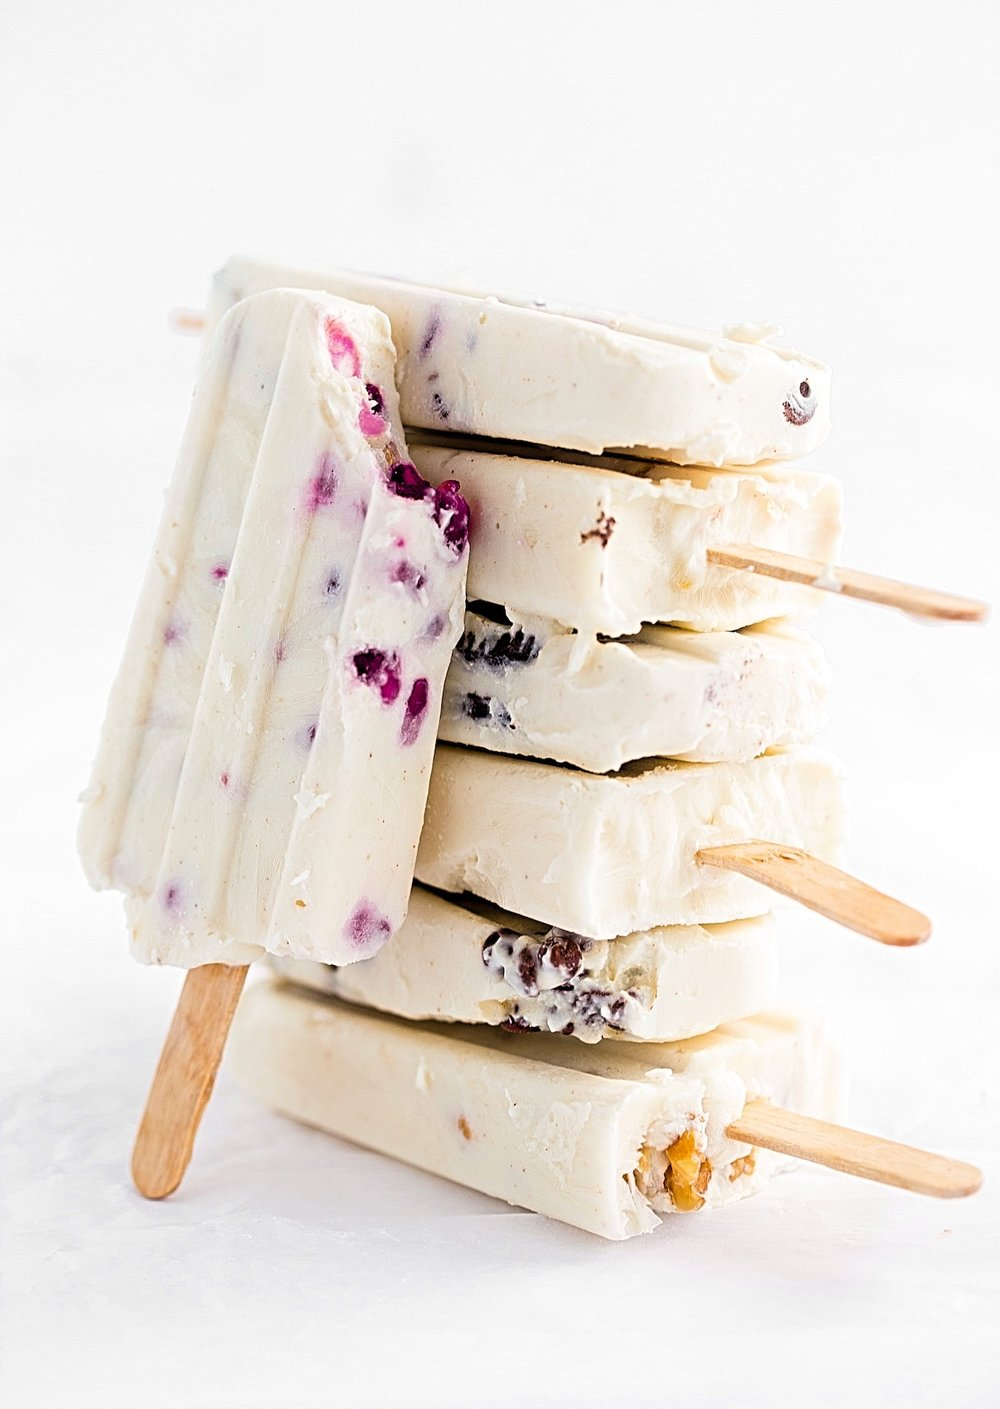 Frozen Yogurt Popsicles with Assorted Fillings: creamy frozen yogurt pops filled with your choice of nuts, cereal, cookies, granola, or chocolate chips. Perfect summer treat! | TrufflesandTrends.com